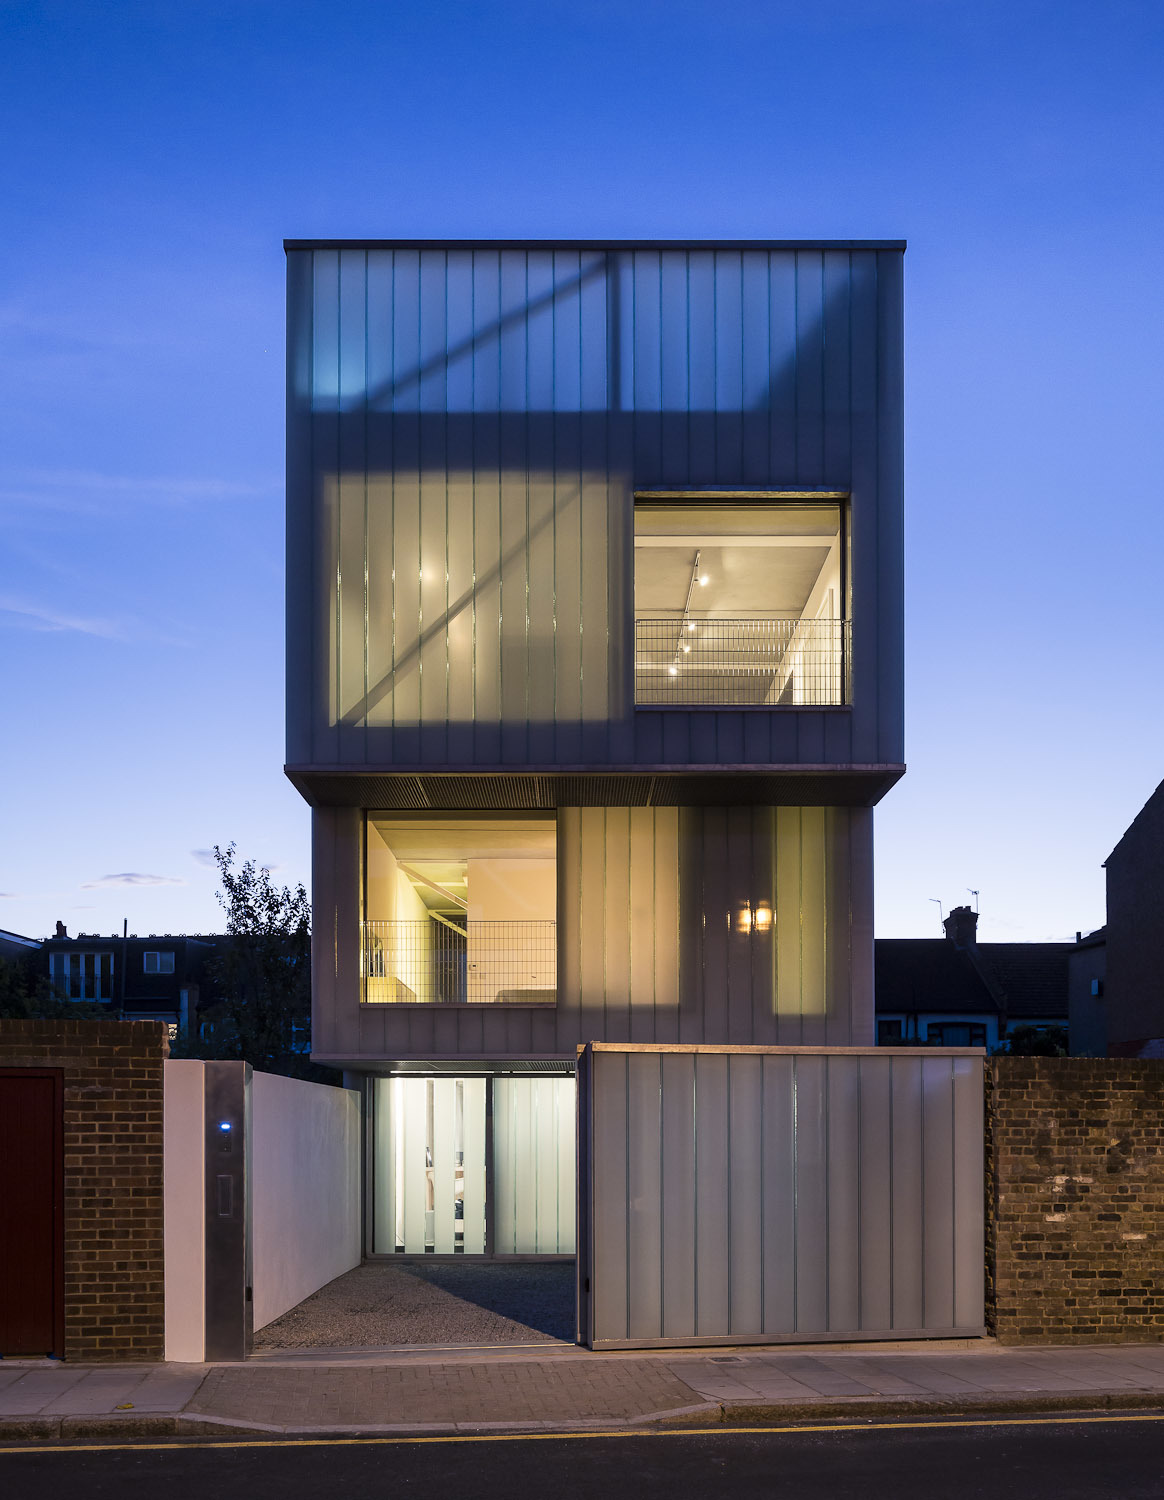 Container Haus London Slip House Carl Turner Architects Archinect